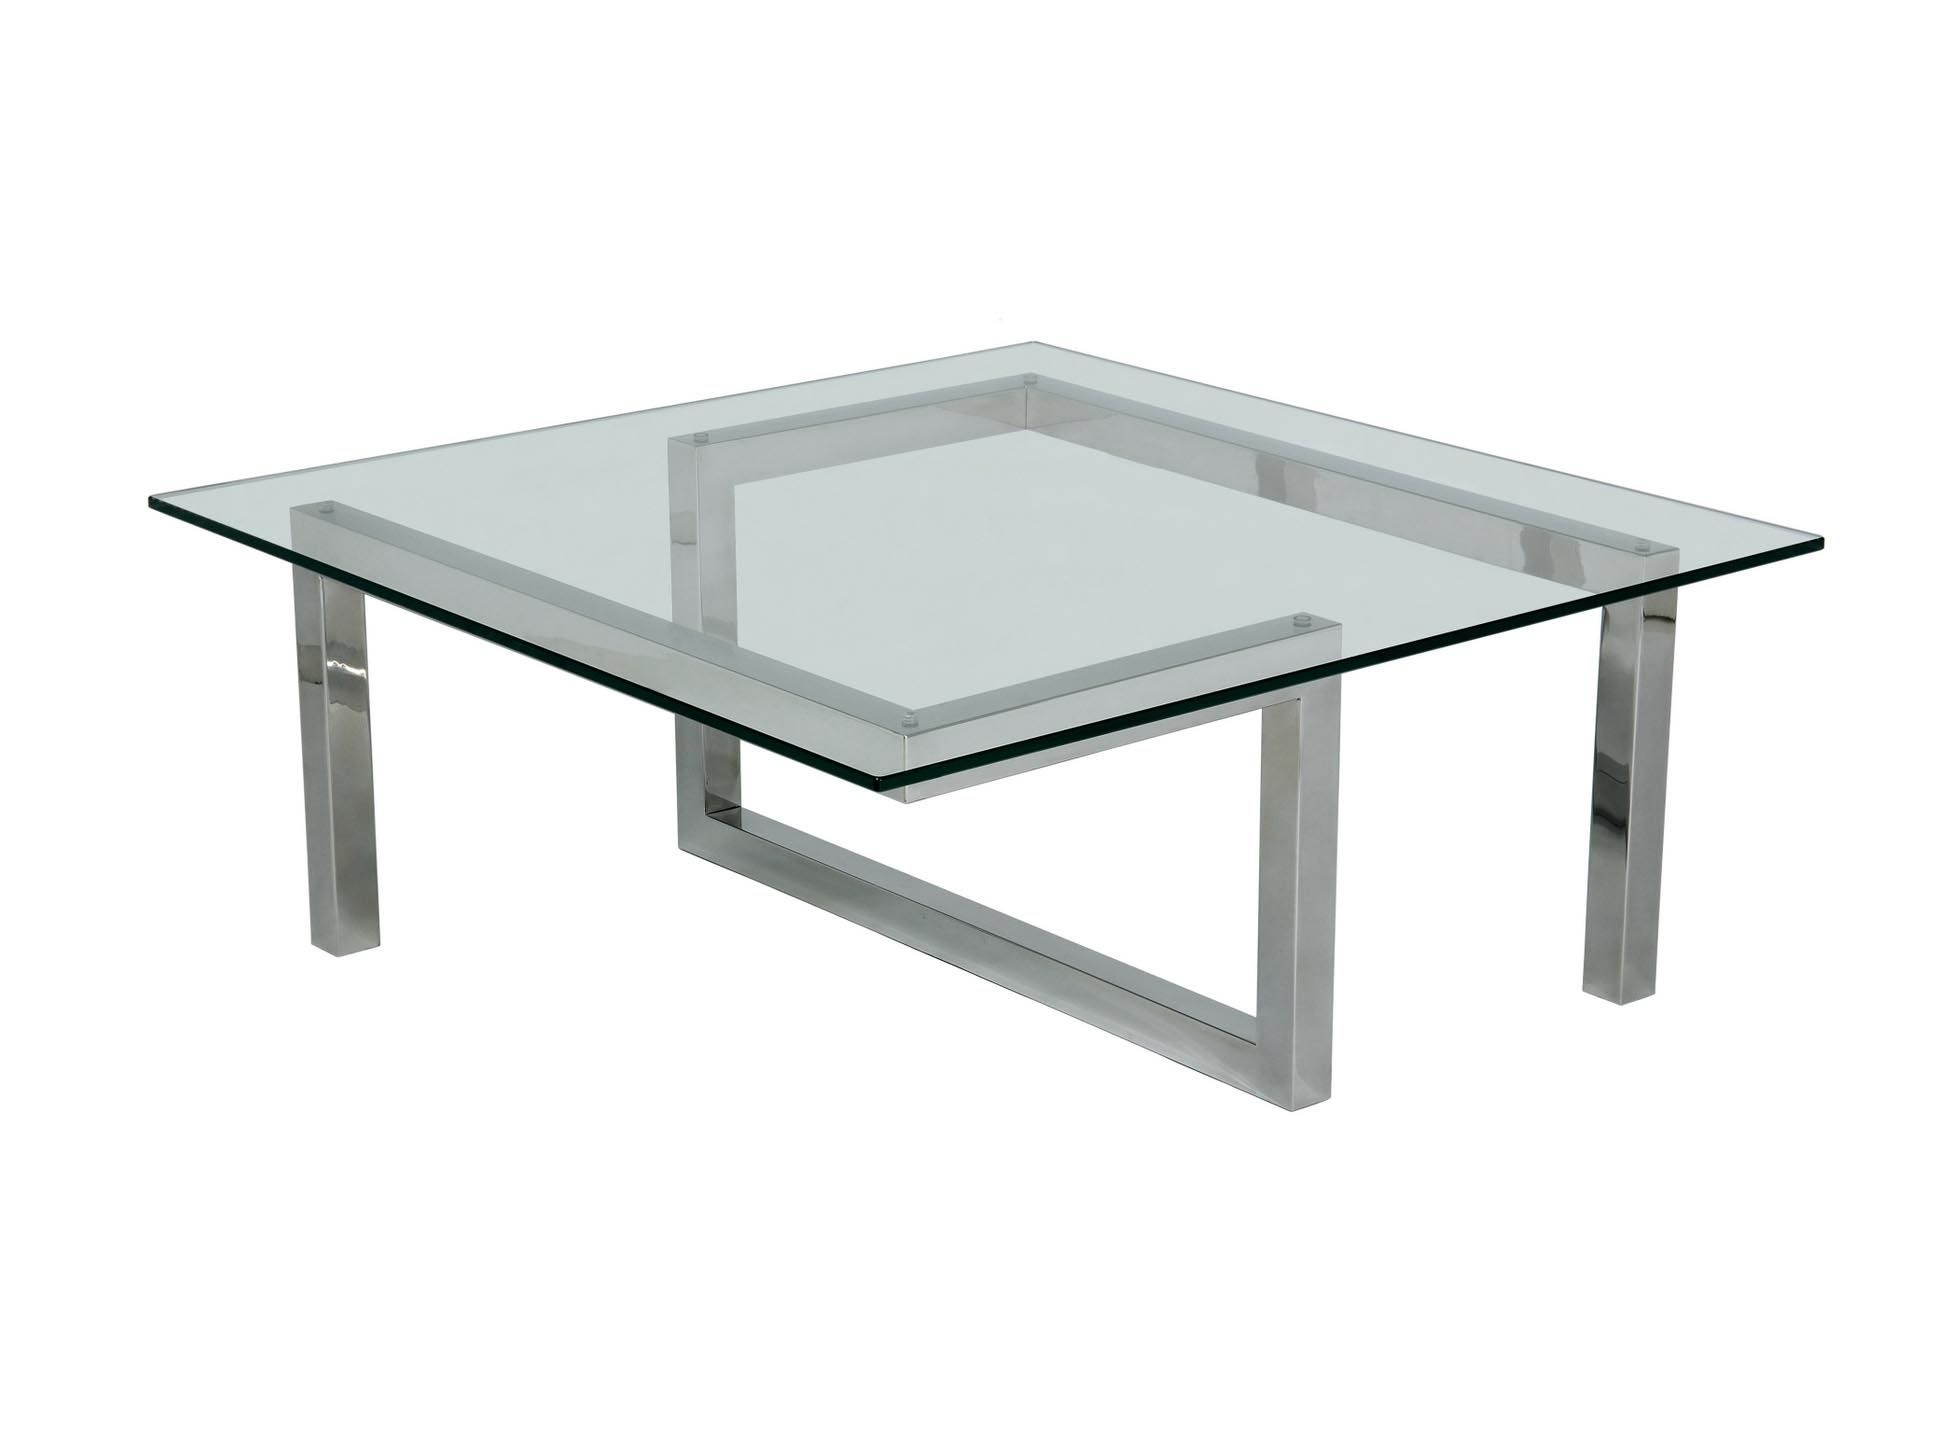 Charming Stainless Steel And Glass Coffee Tables